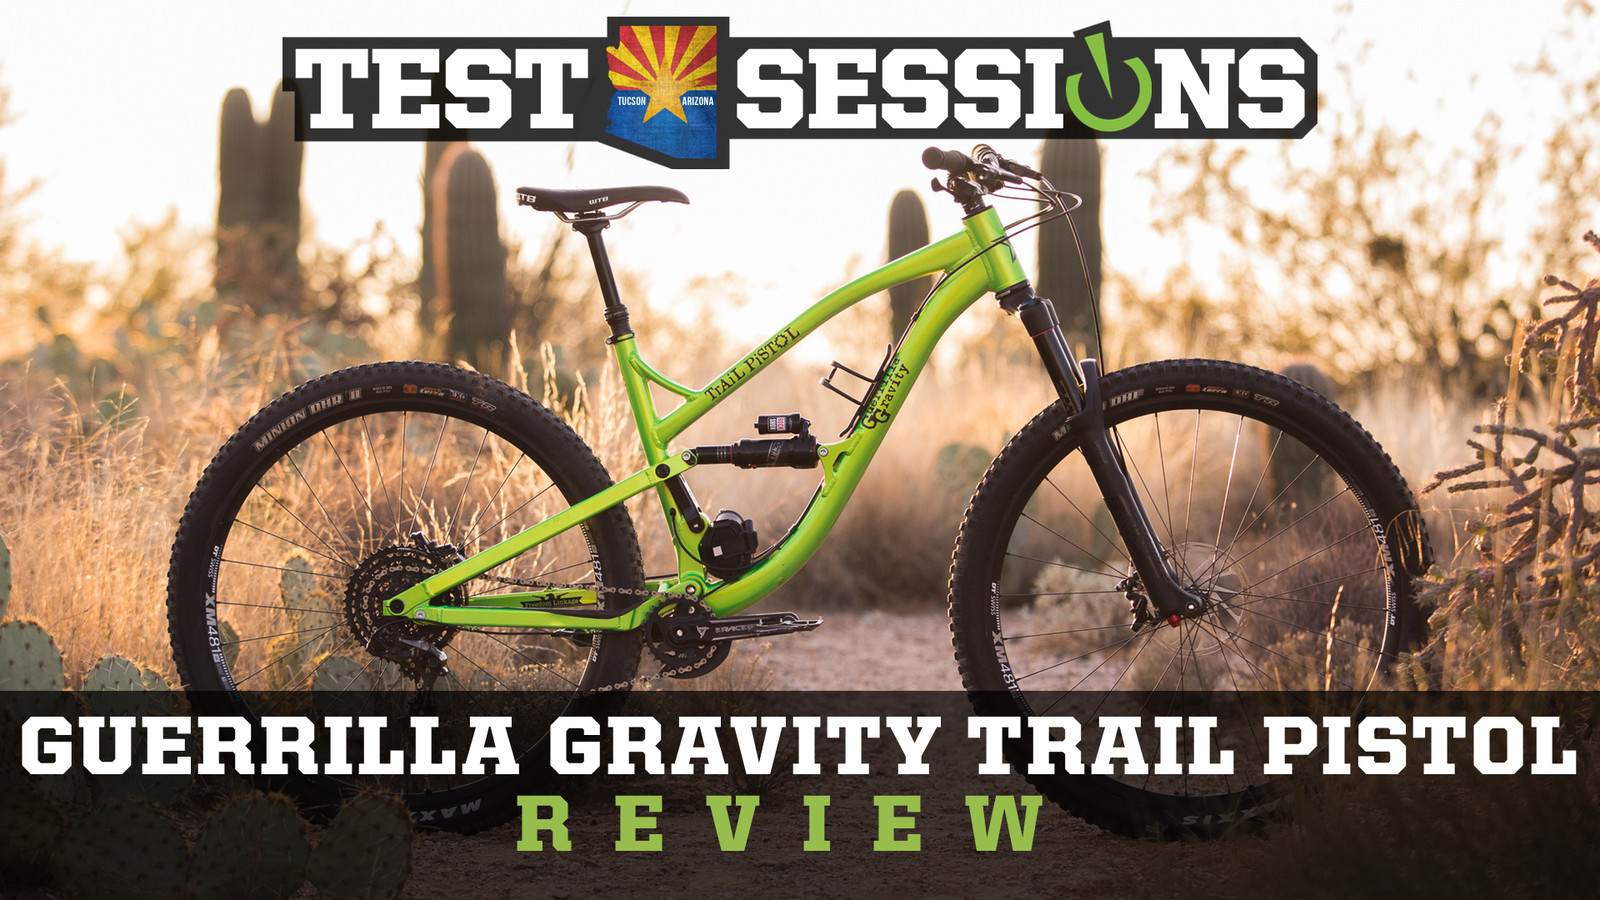 Review - 2017 Guerrilla Gravity Trail Pistol from Vital MTB Test Sessions